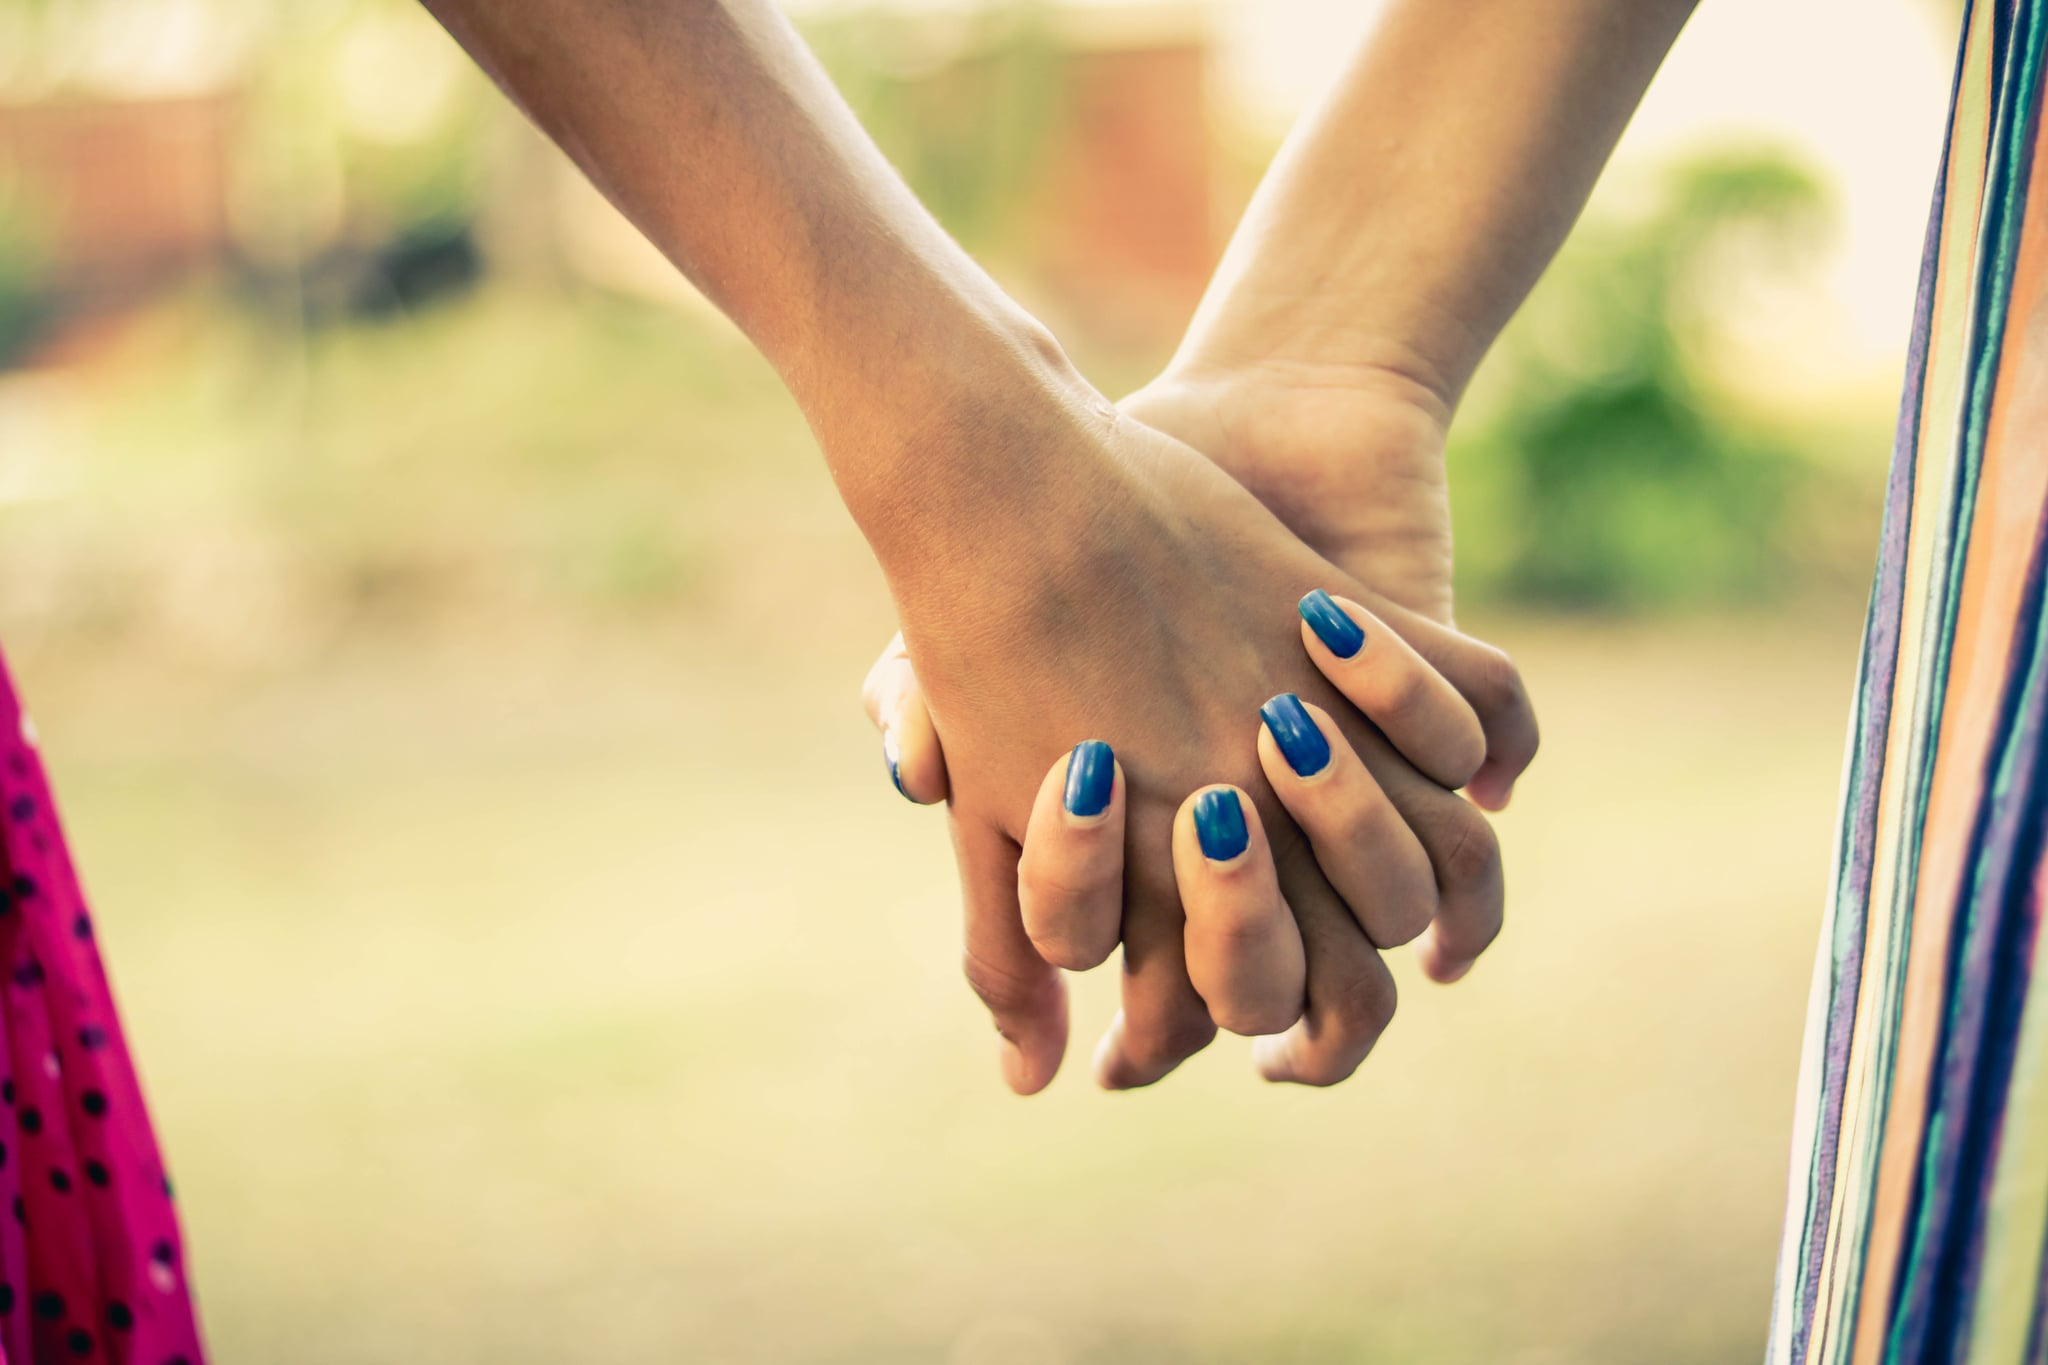 tmp_GgzqlE_a07e56a6aa3c3b15_shallow-focus-photography-of-two-person-holding-hands-1101731.jpg